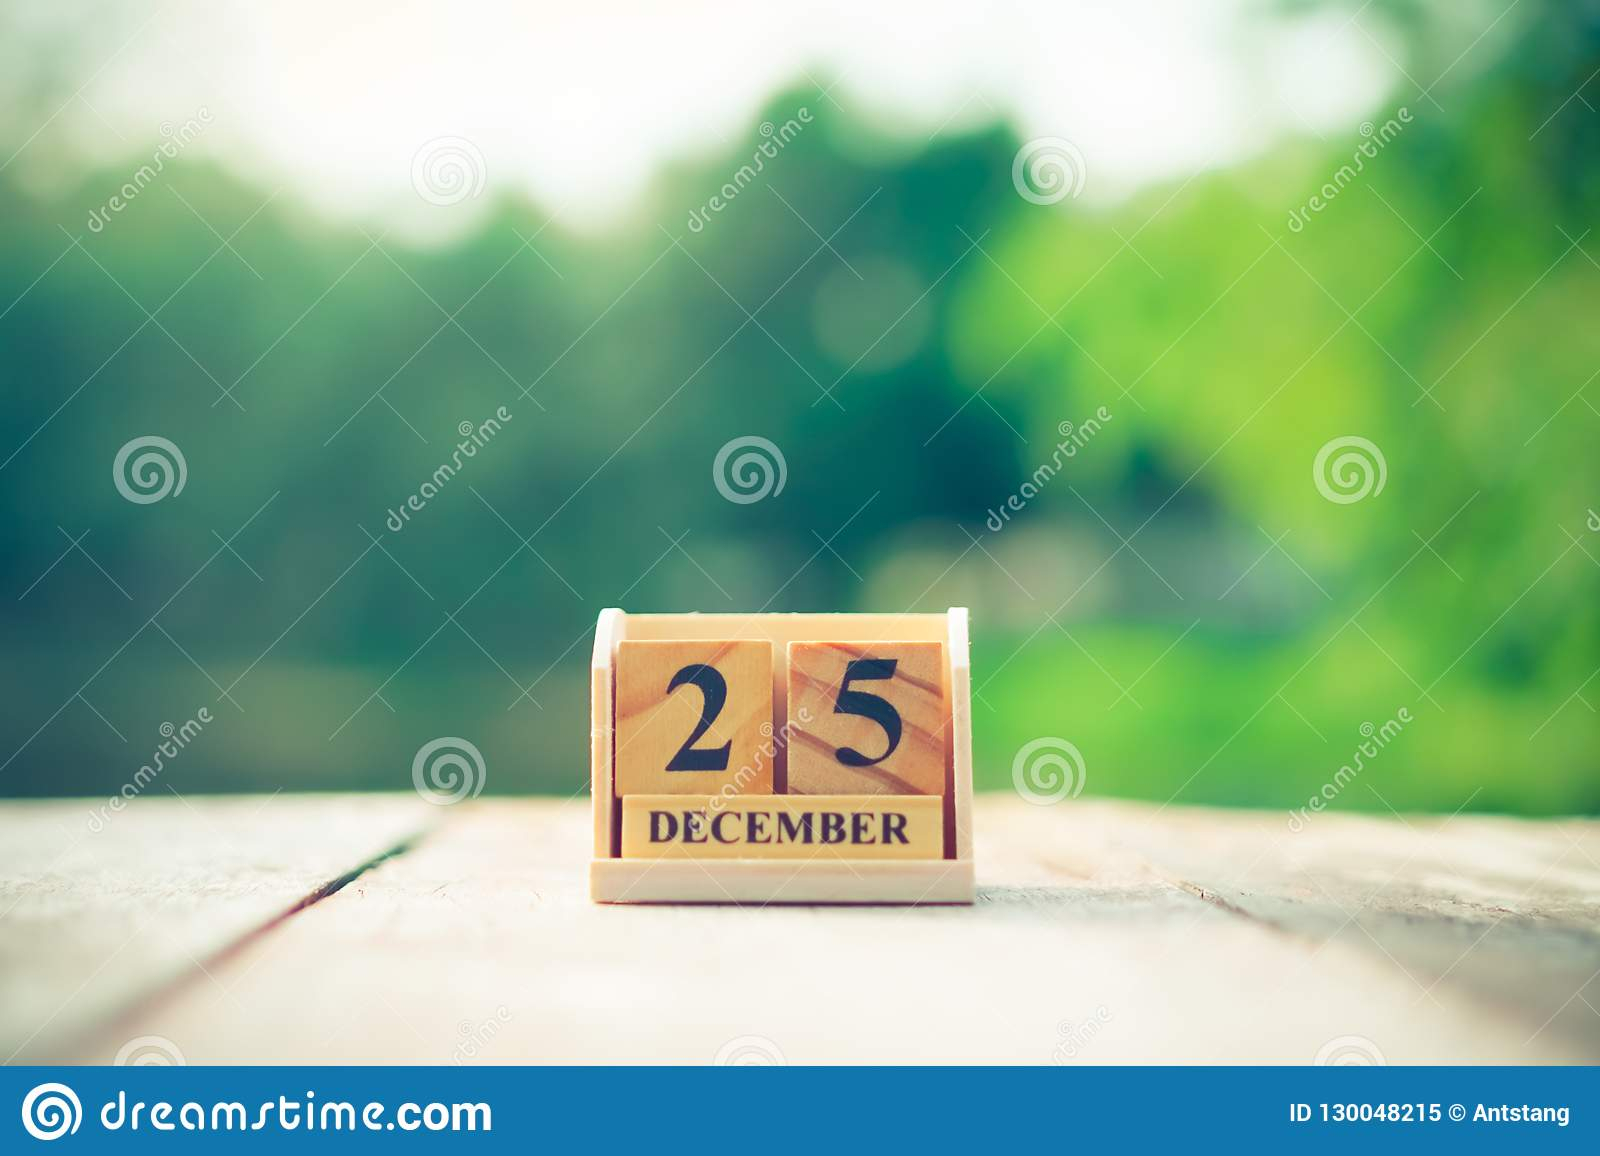 Wood Brick Block Show Date And Month Calendar Of 25Th